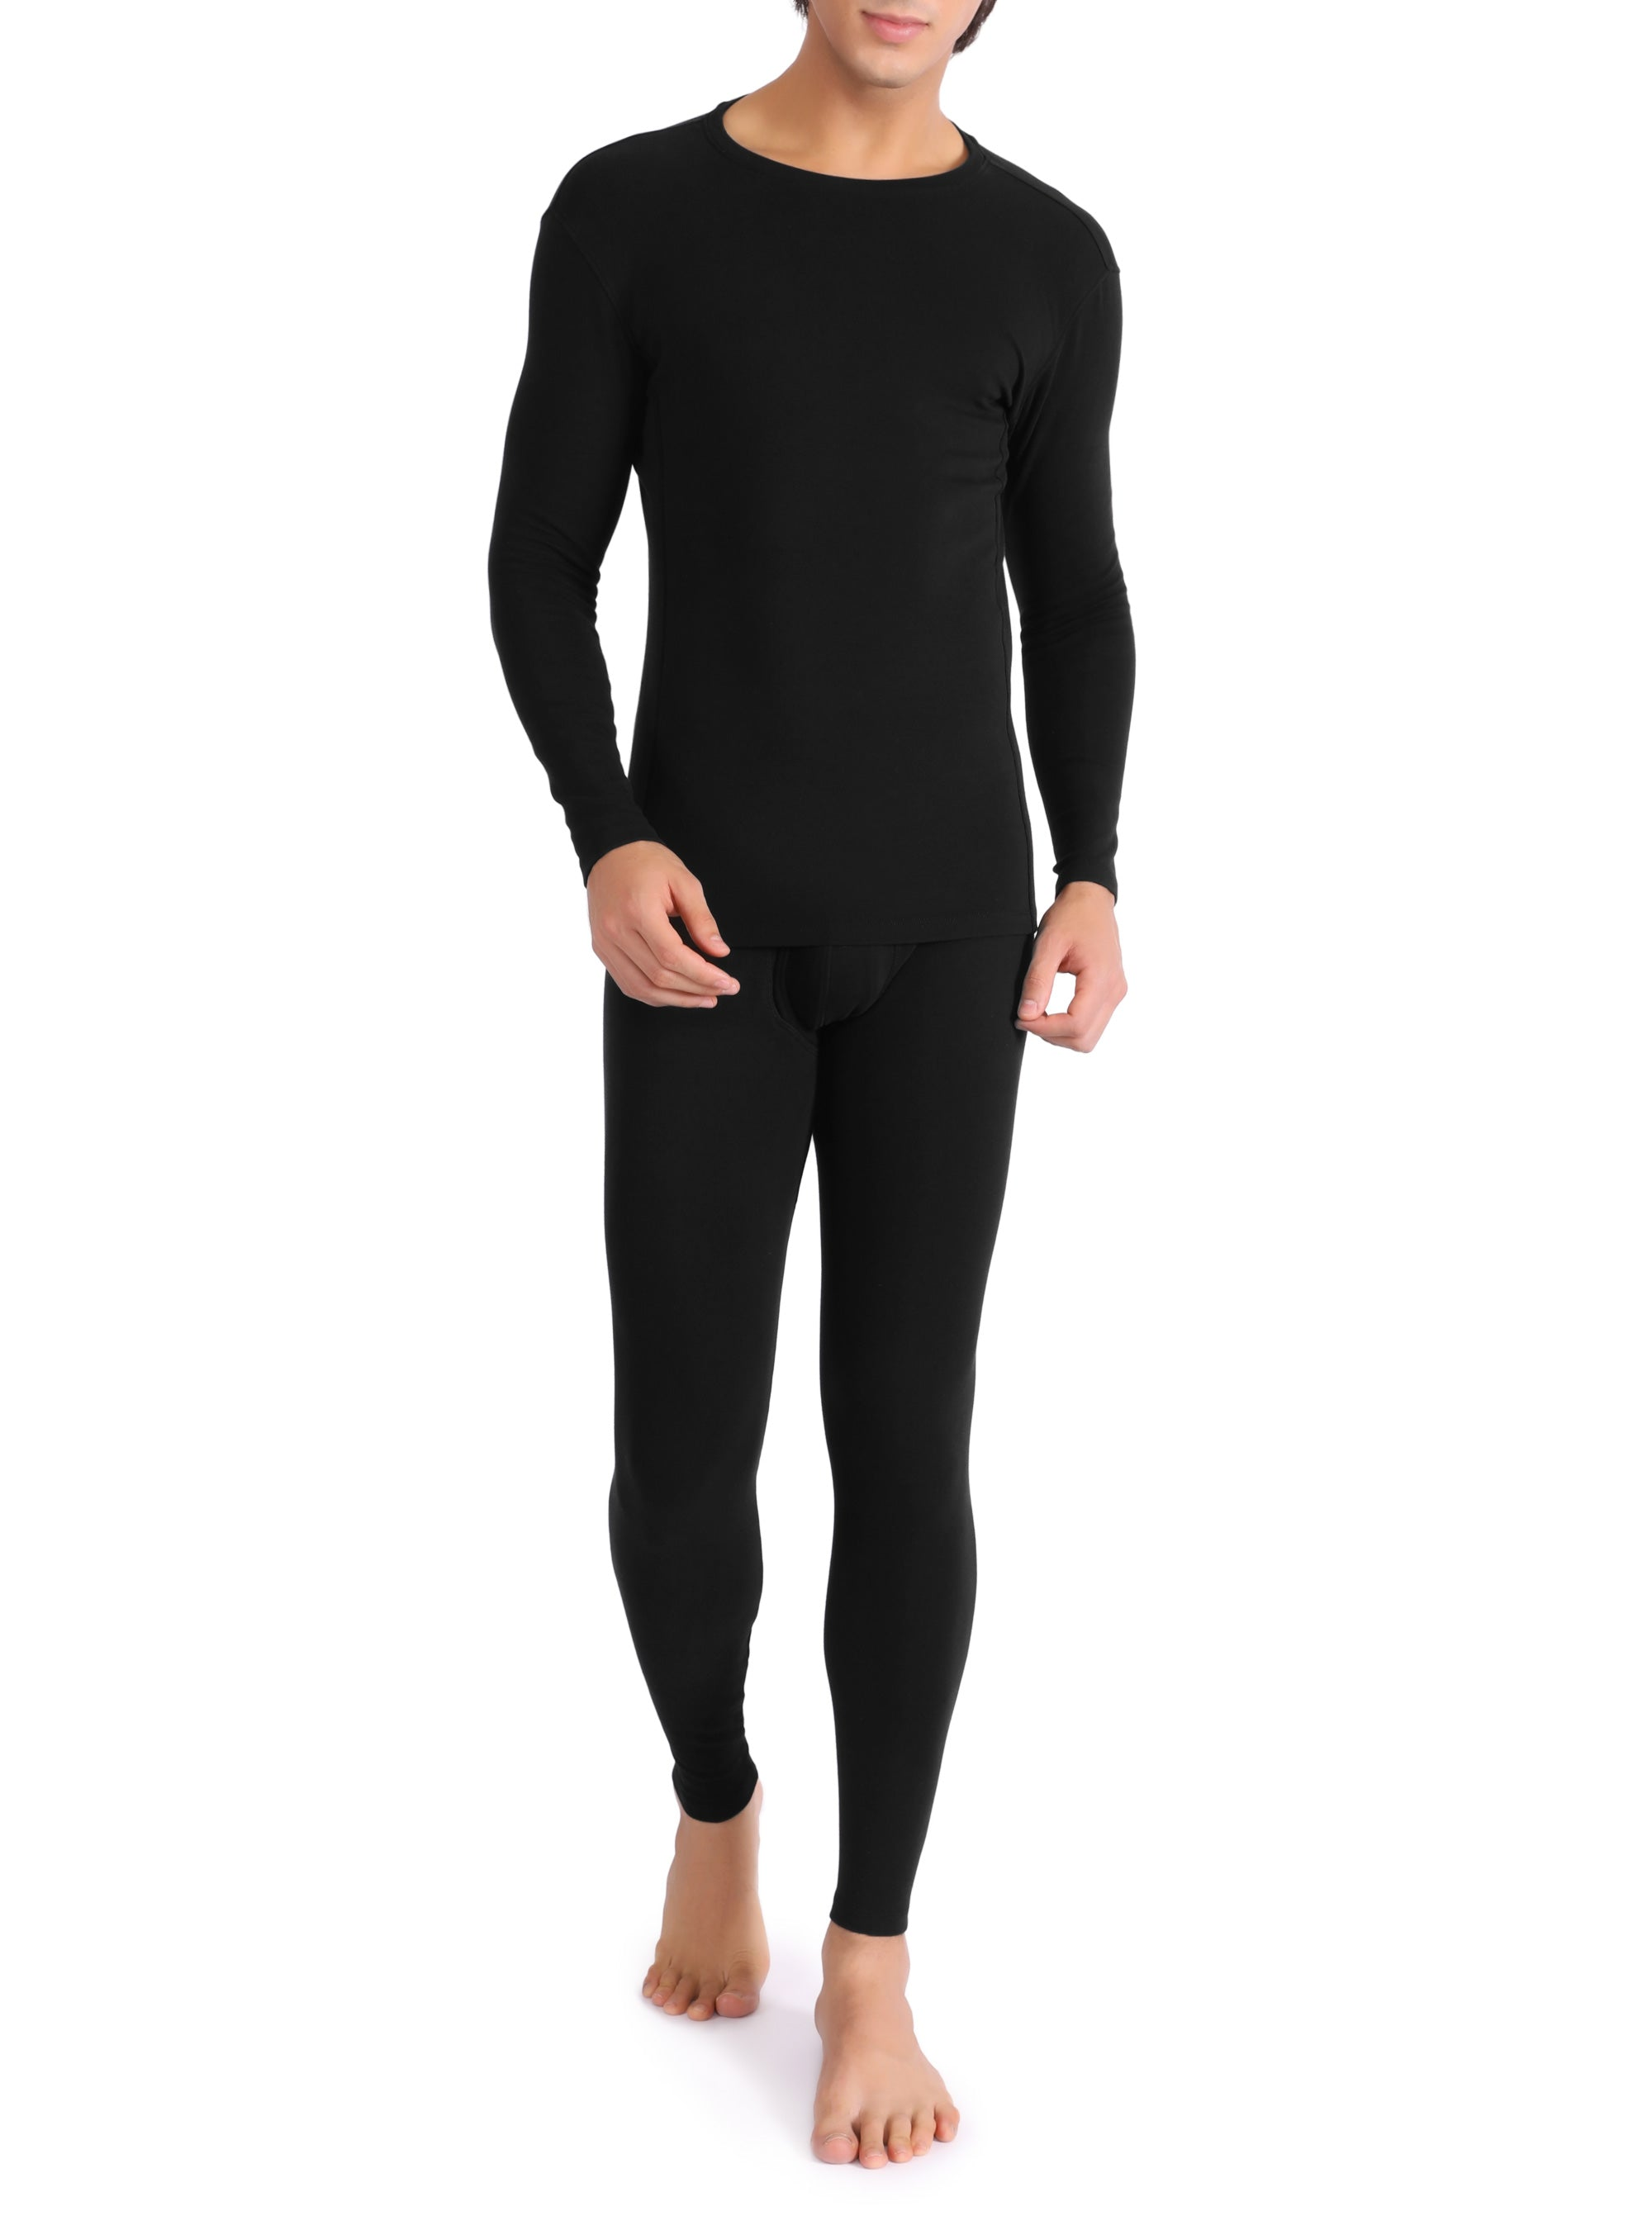 David Archy® Men's Fleece Lined Base Laye Thermal Set with Fly Long Underwear Warm Inner Wear-Thermal-David Archy